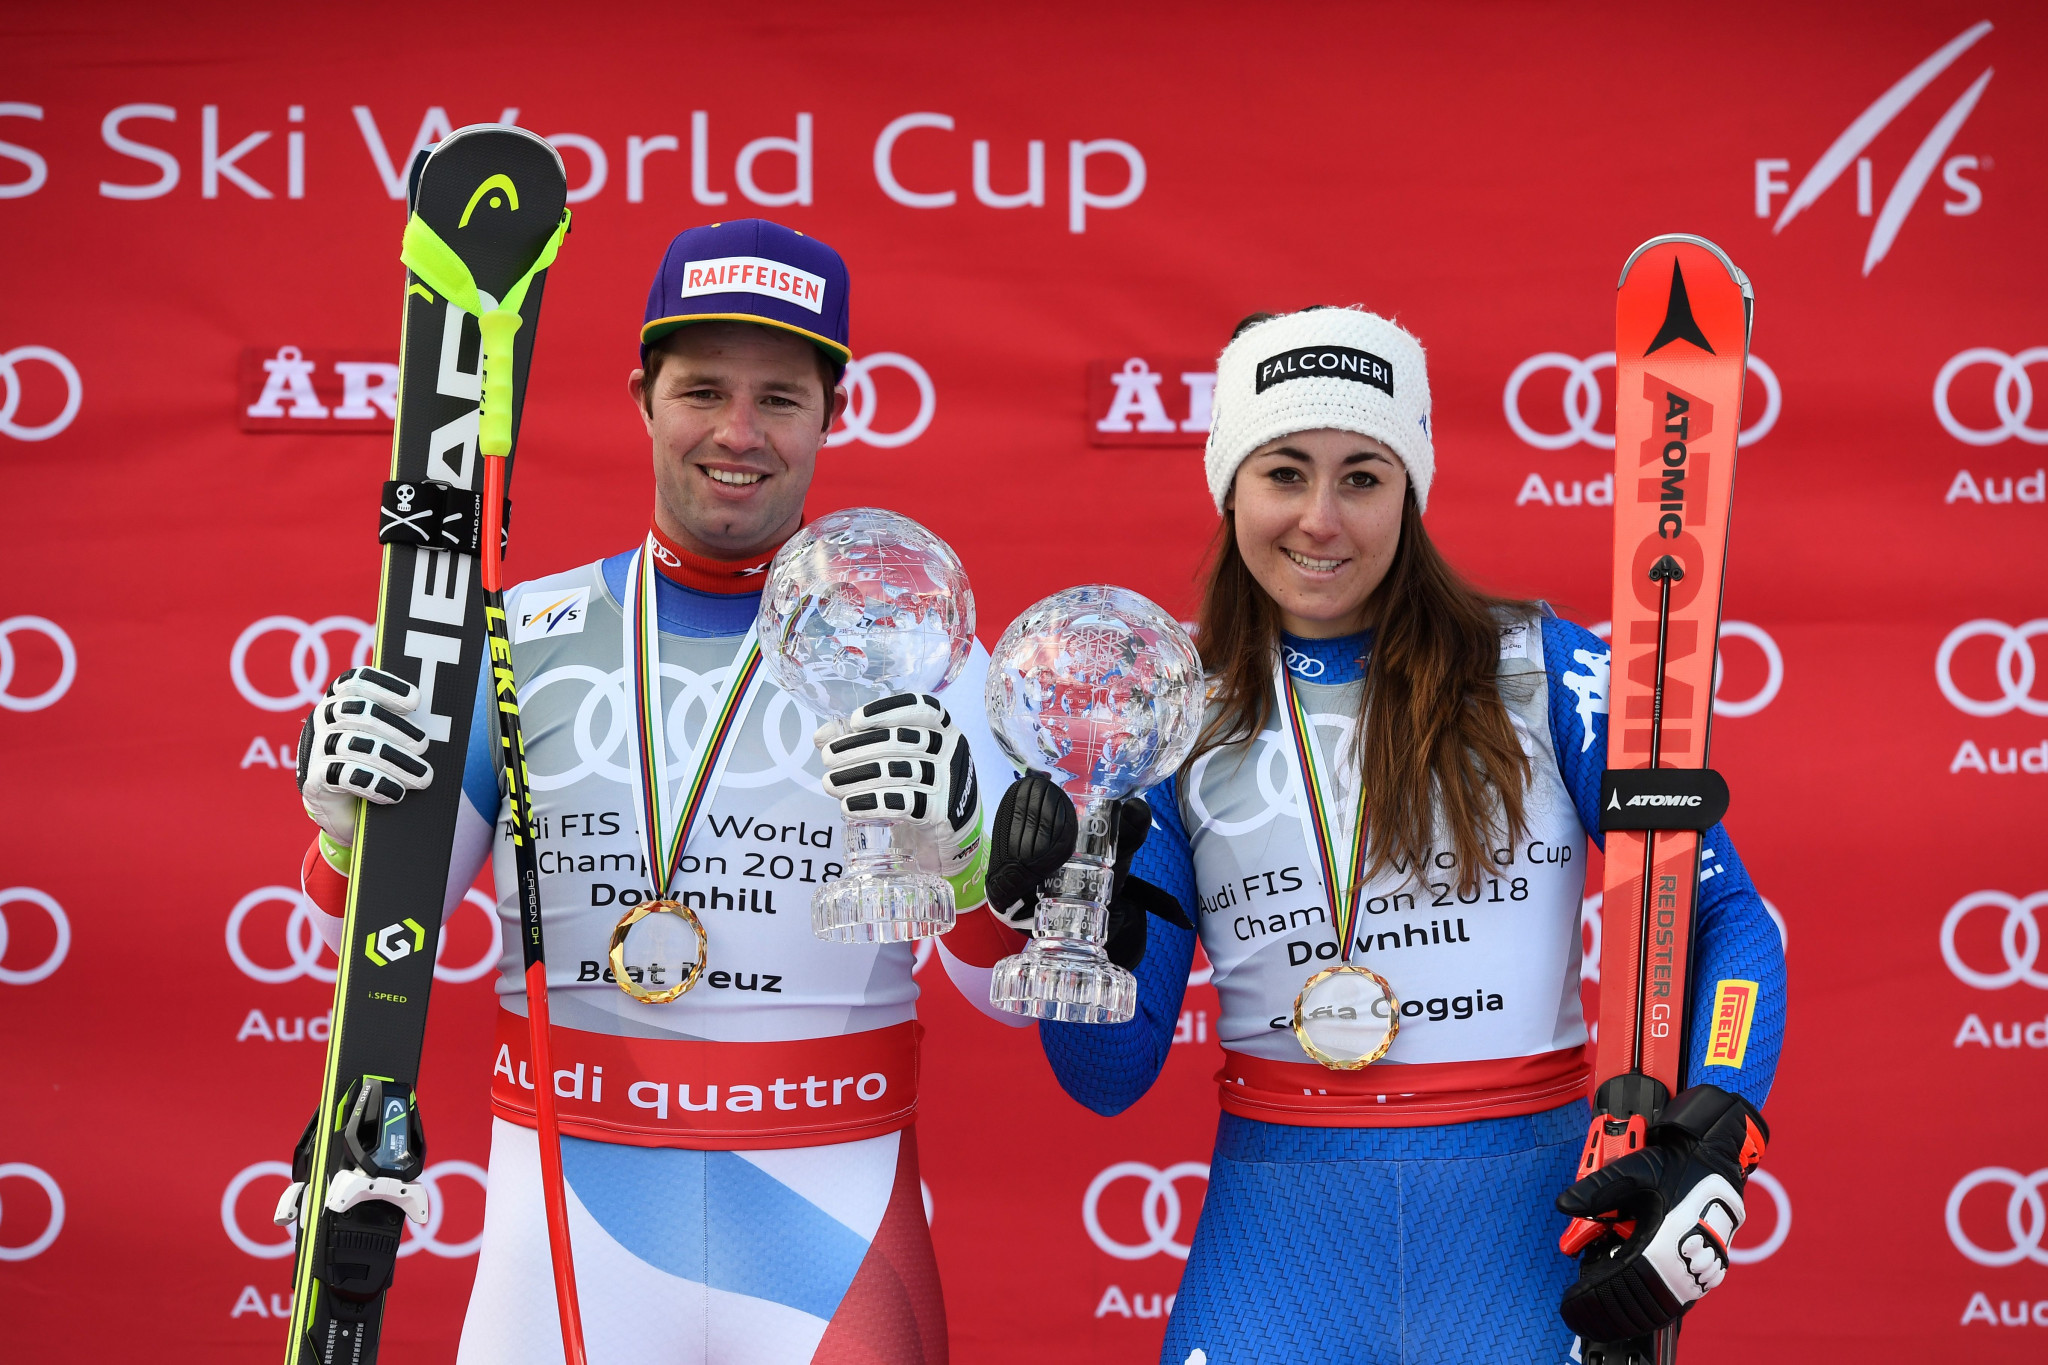 Olympic champ Sofia Goggia captures World Cup downhill title